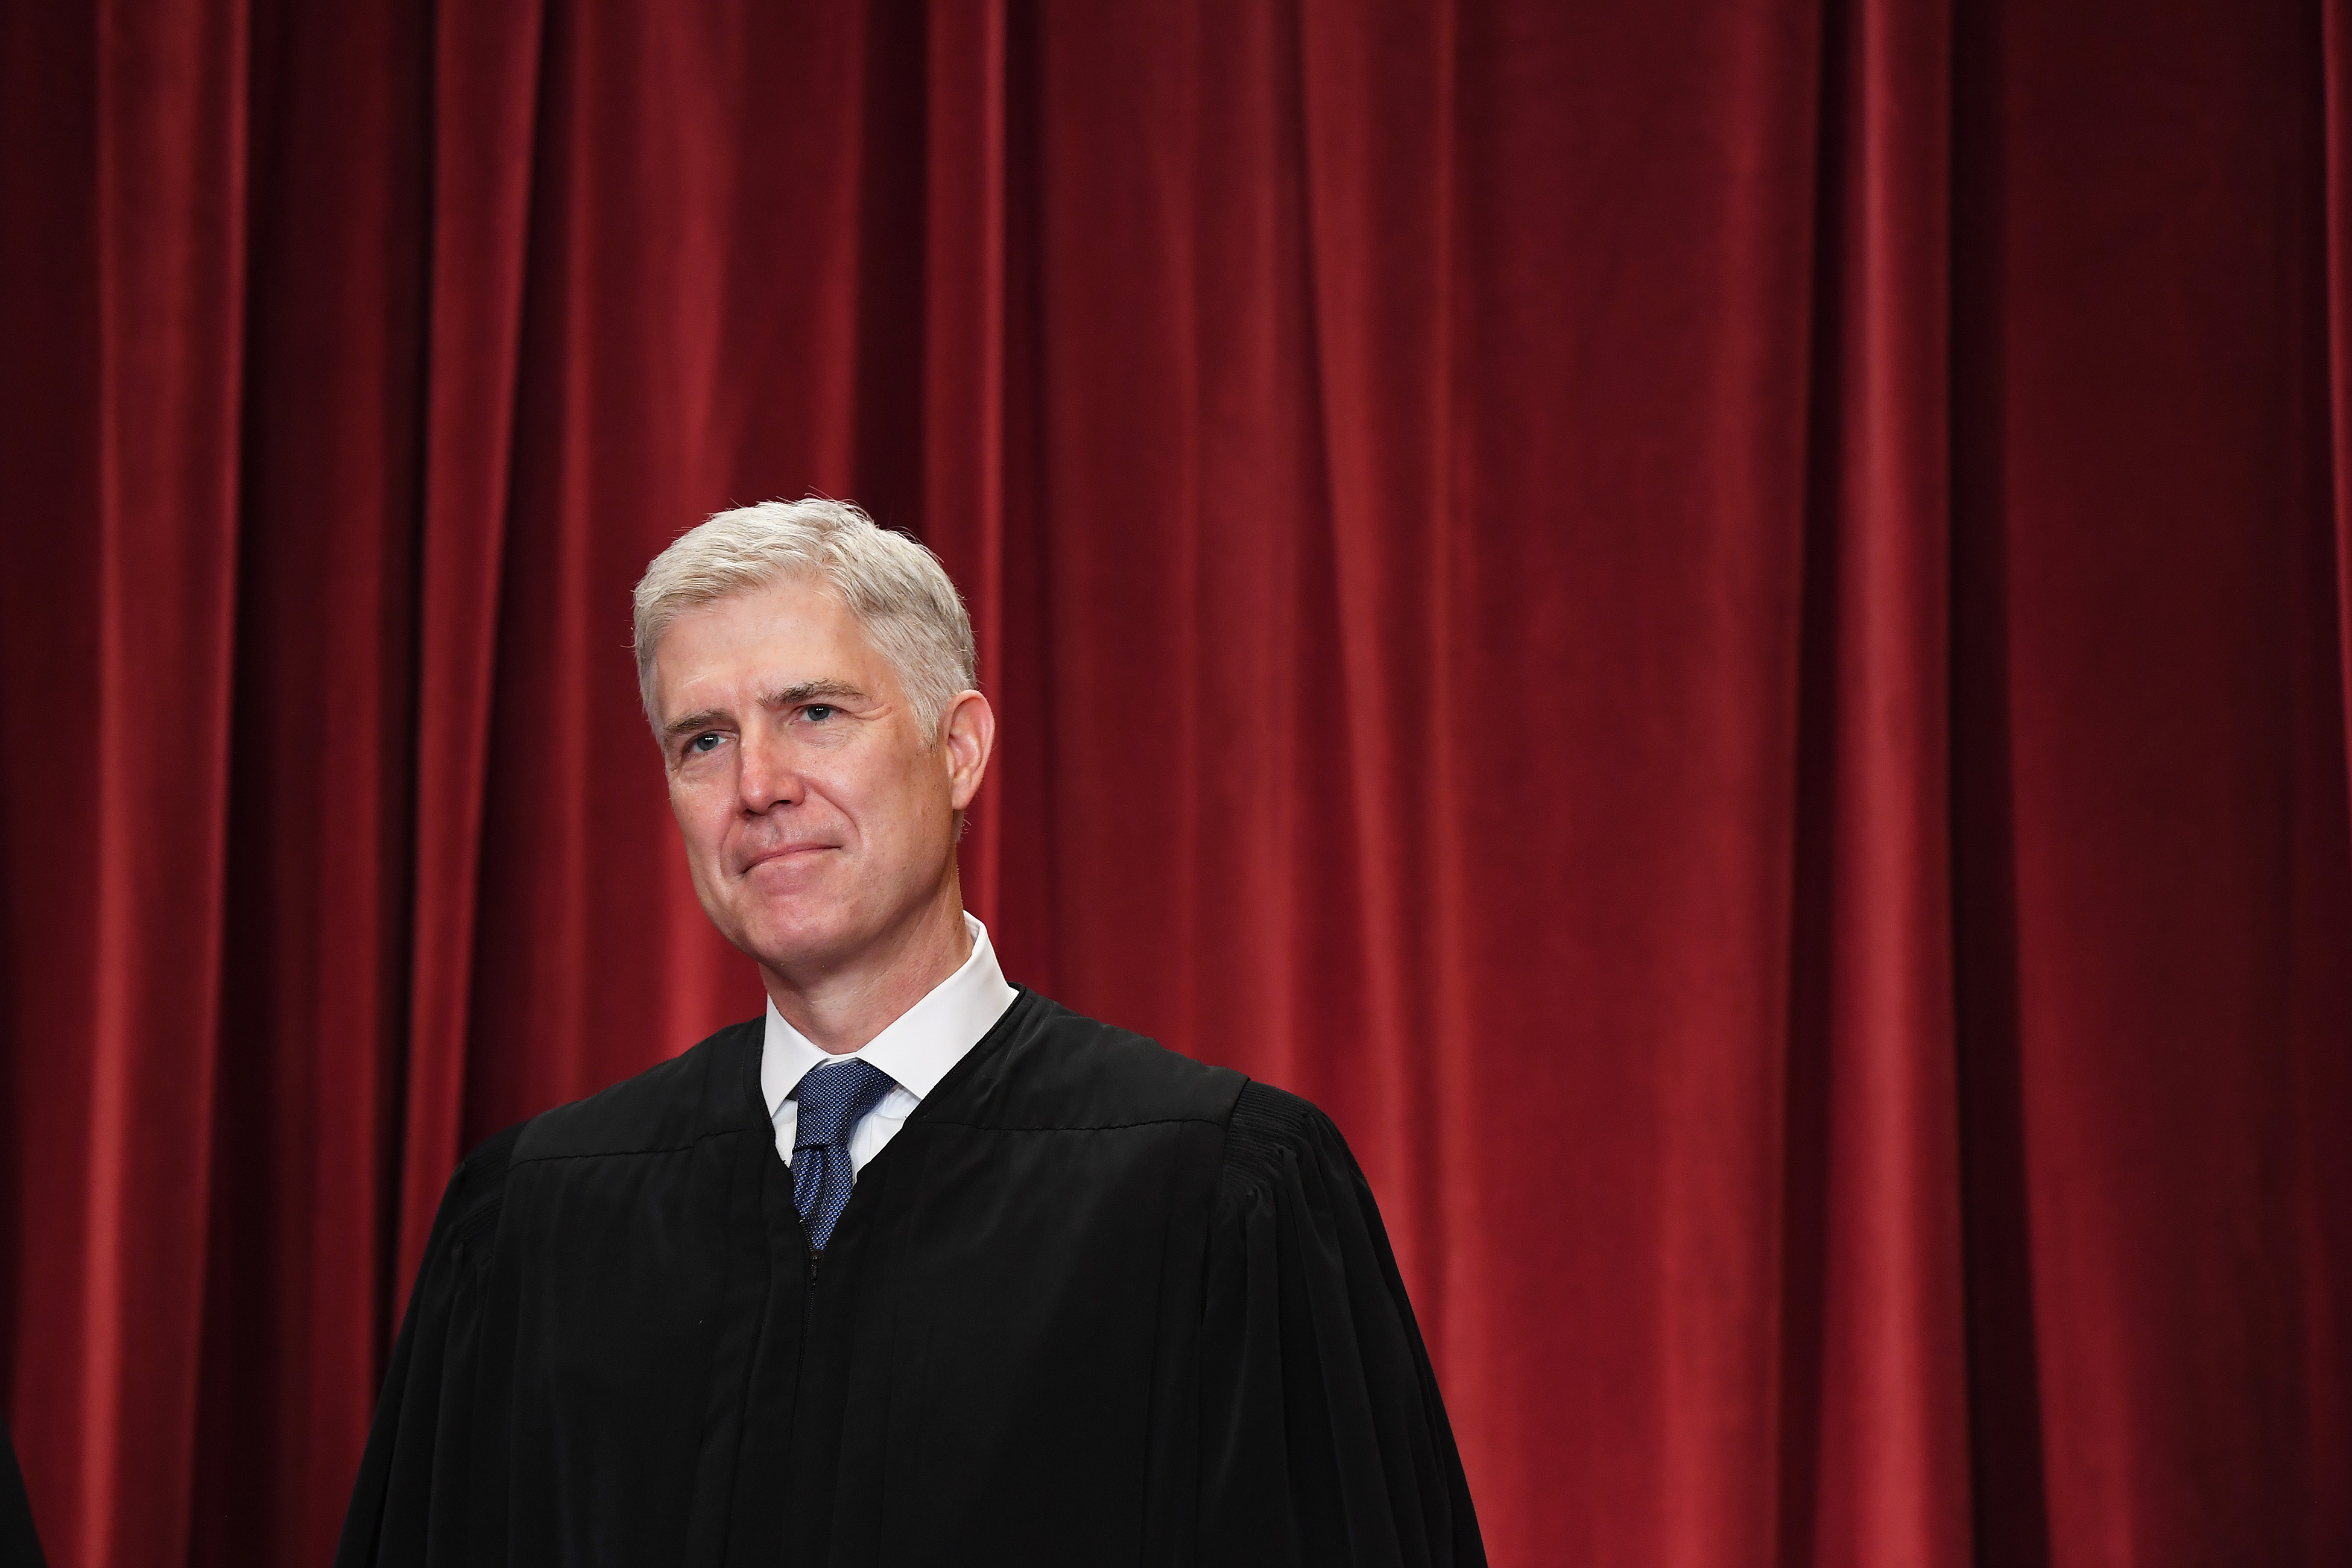 Associate Justice Neil Gorsuch poses with other justices for a portrait in the east conference room of the building of the Supreme Court of the United States on June 1, 2017.